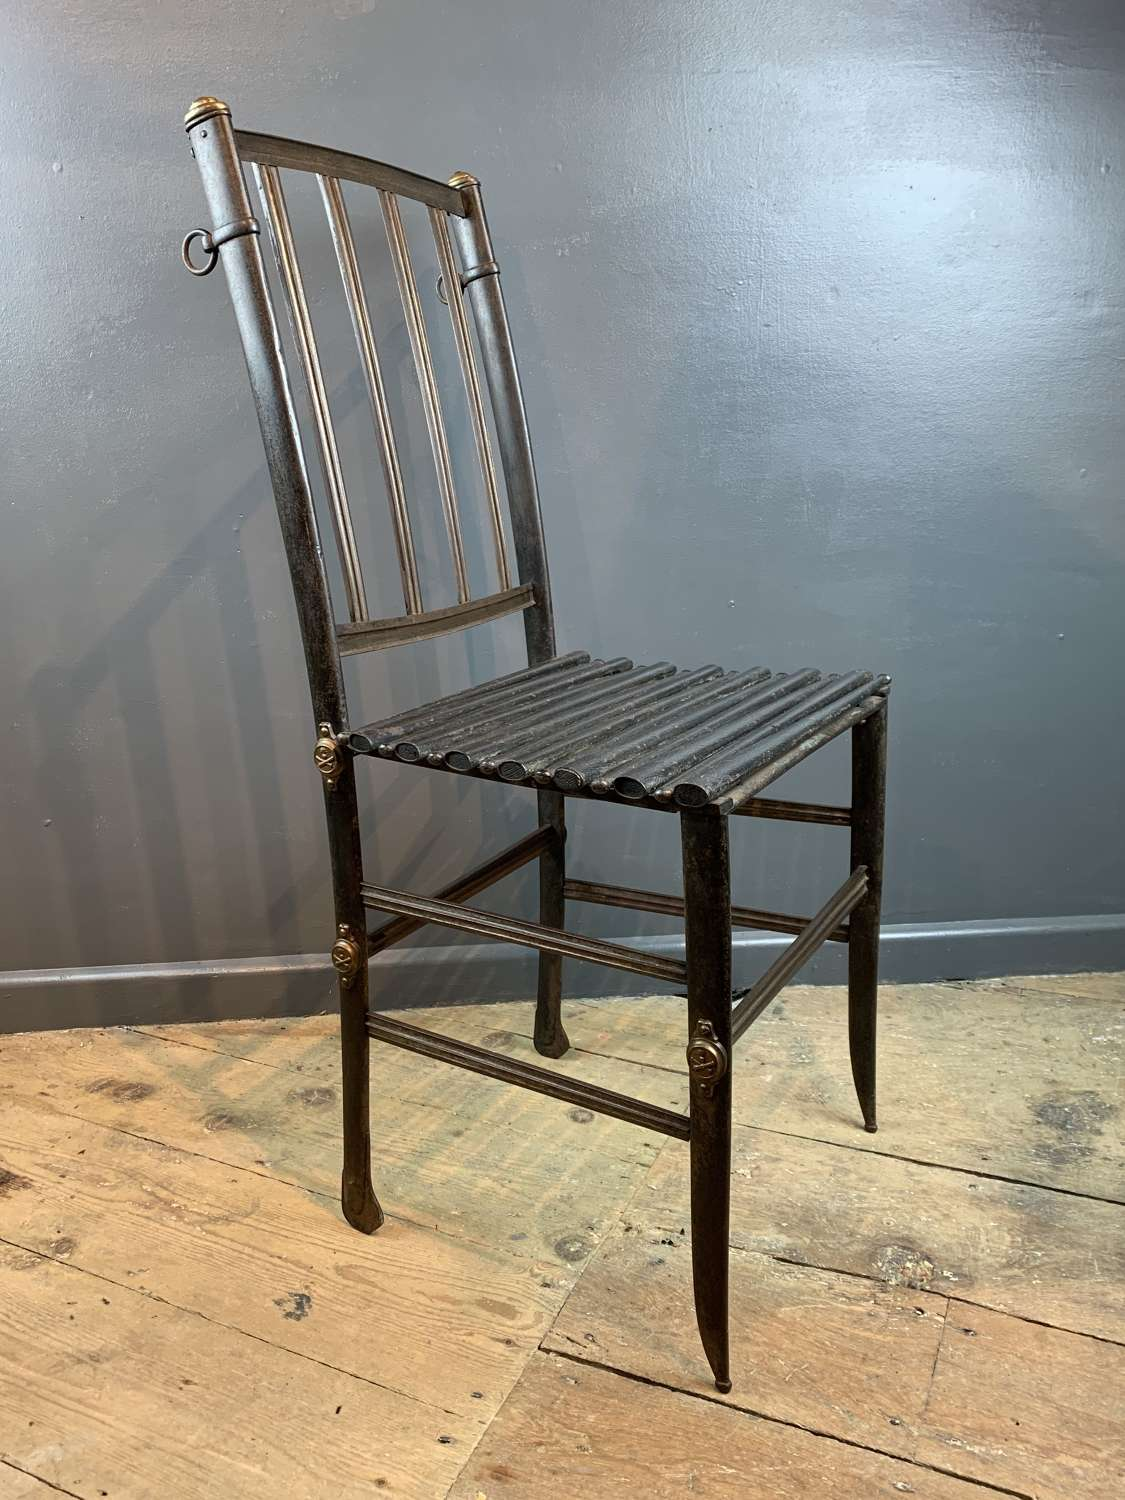 Very Unusual 19th Century French Armoury Chair